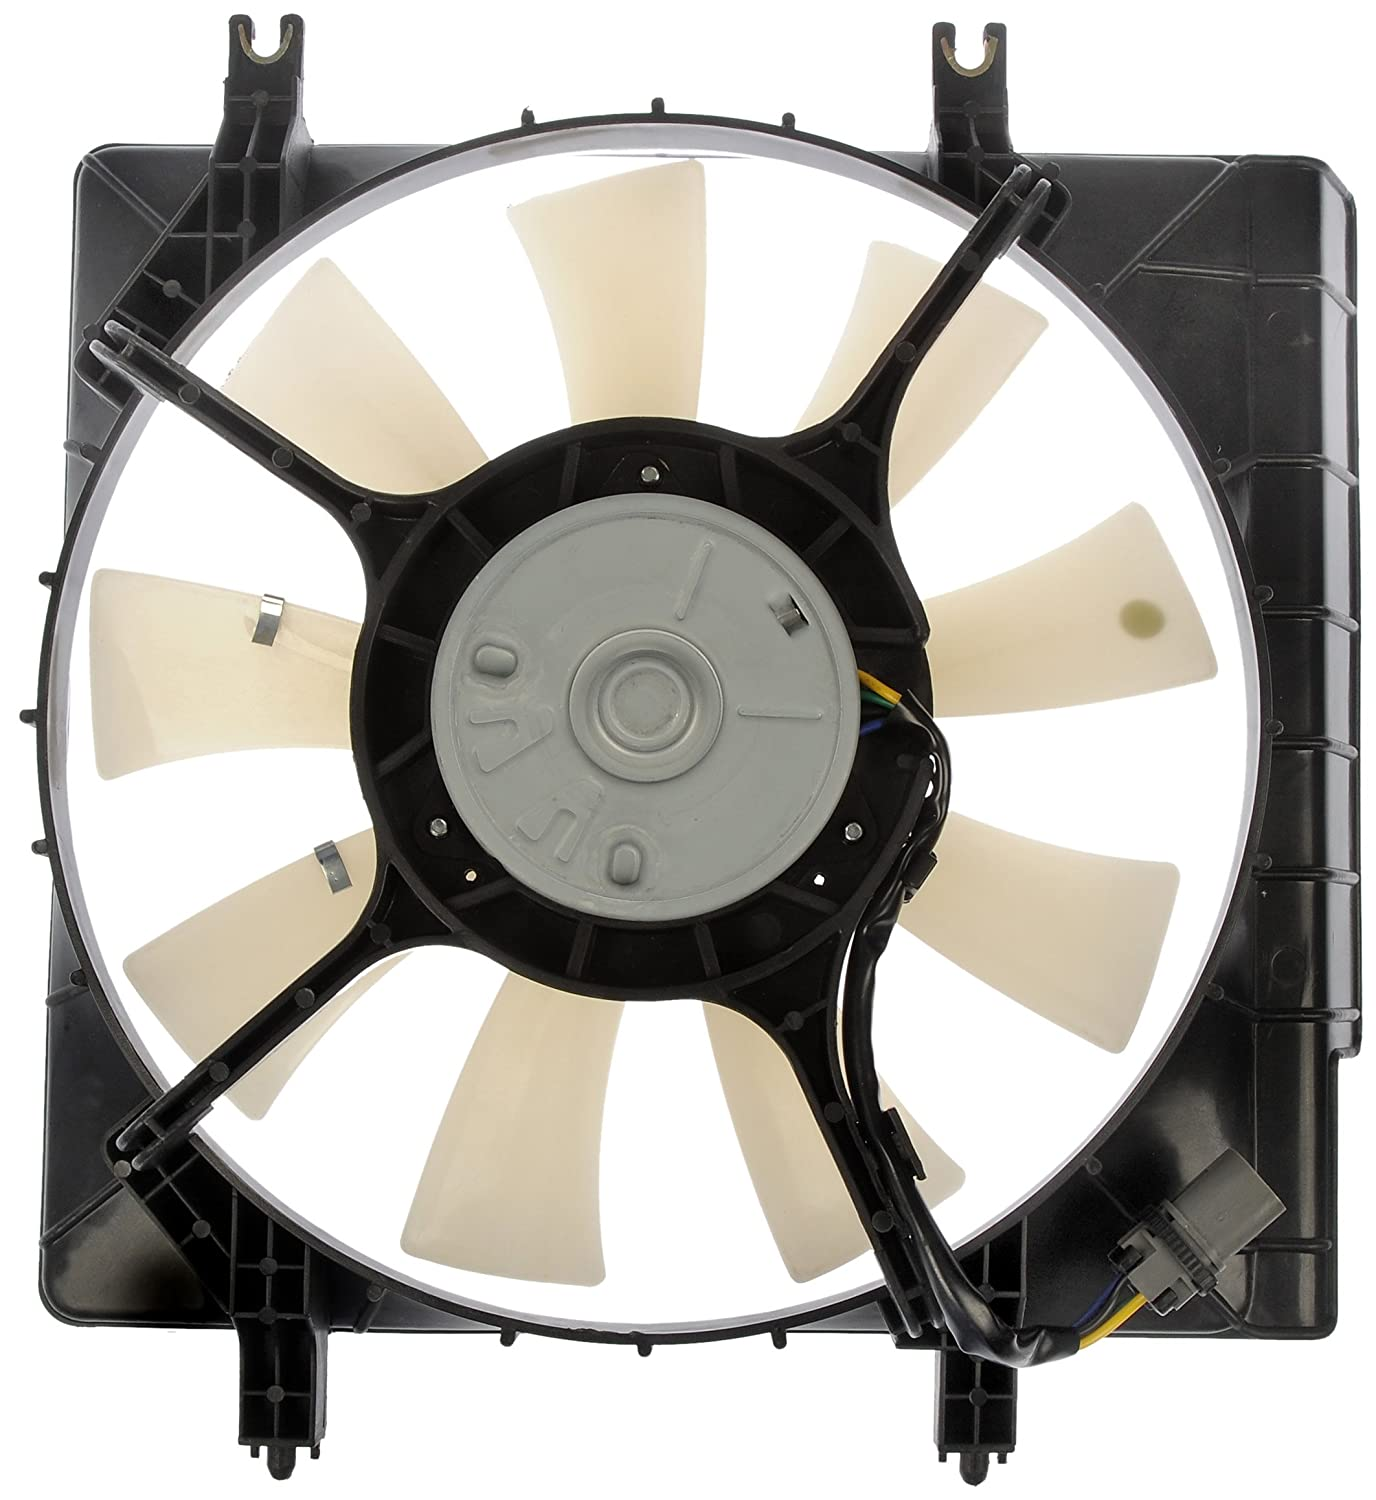 Dorman 621-265 Condenser Fan Assembly for Subaru Outback Dorman - OE Solutions